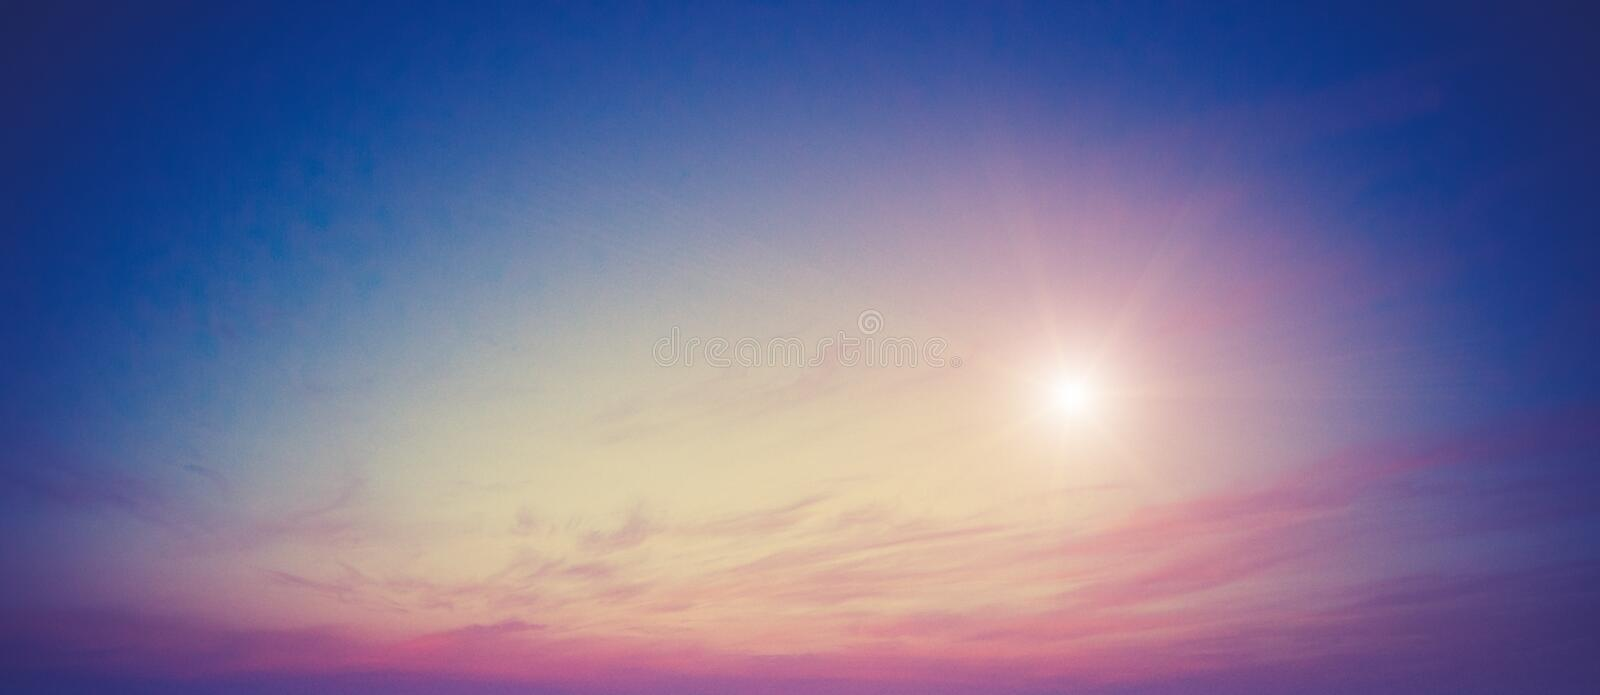 Summer colors sky and clouds royalty free stock images